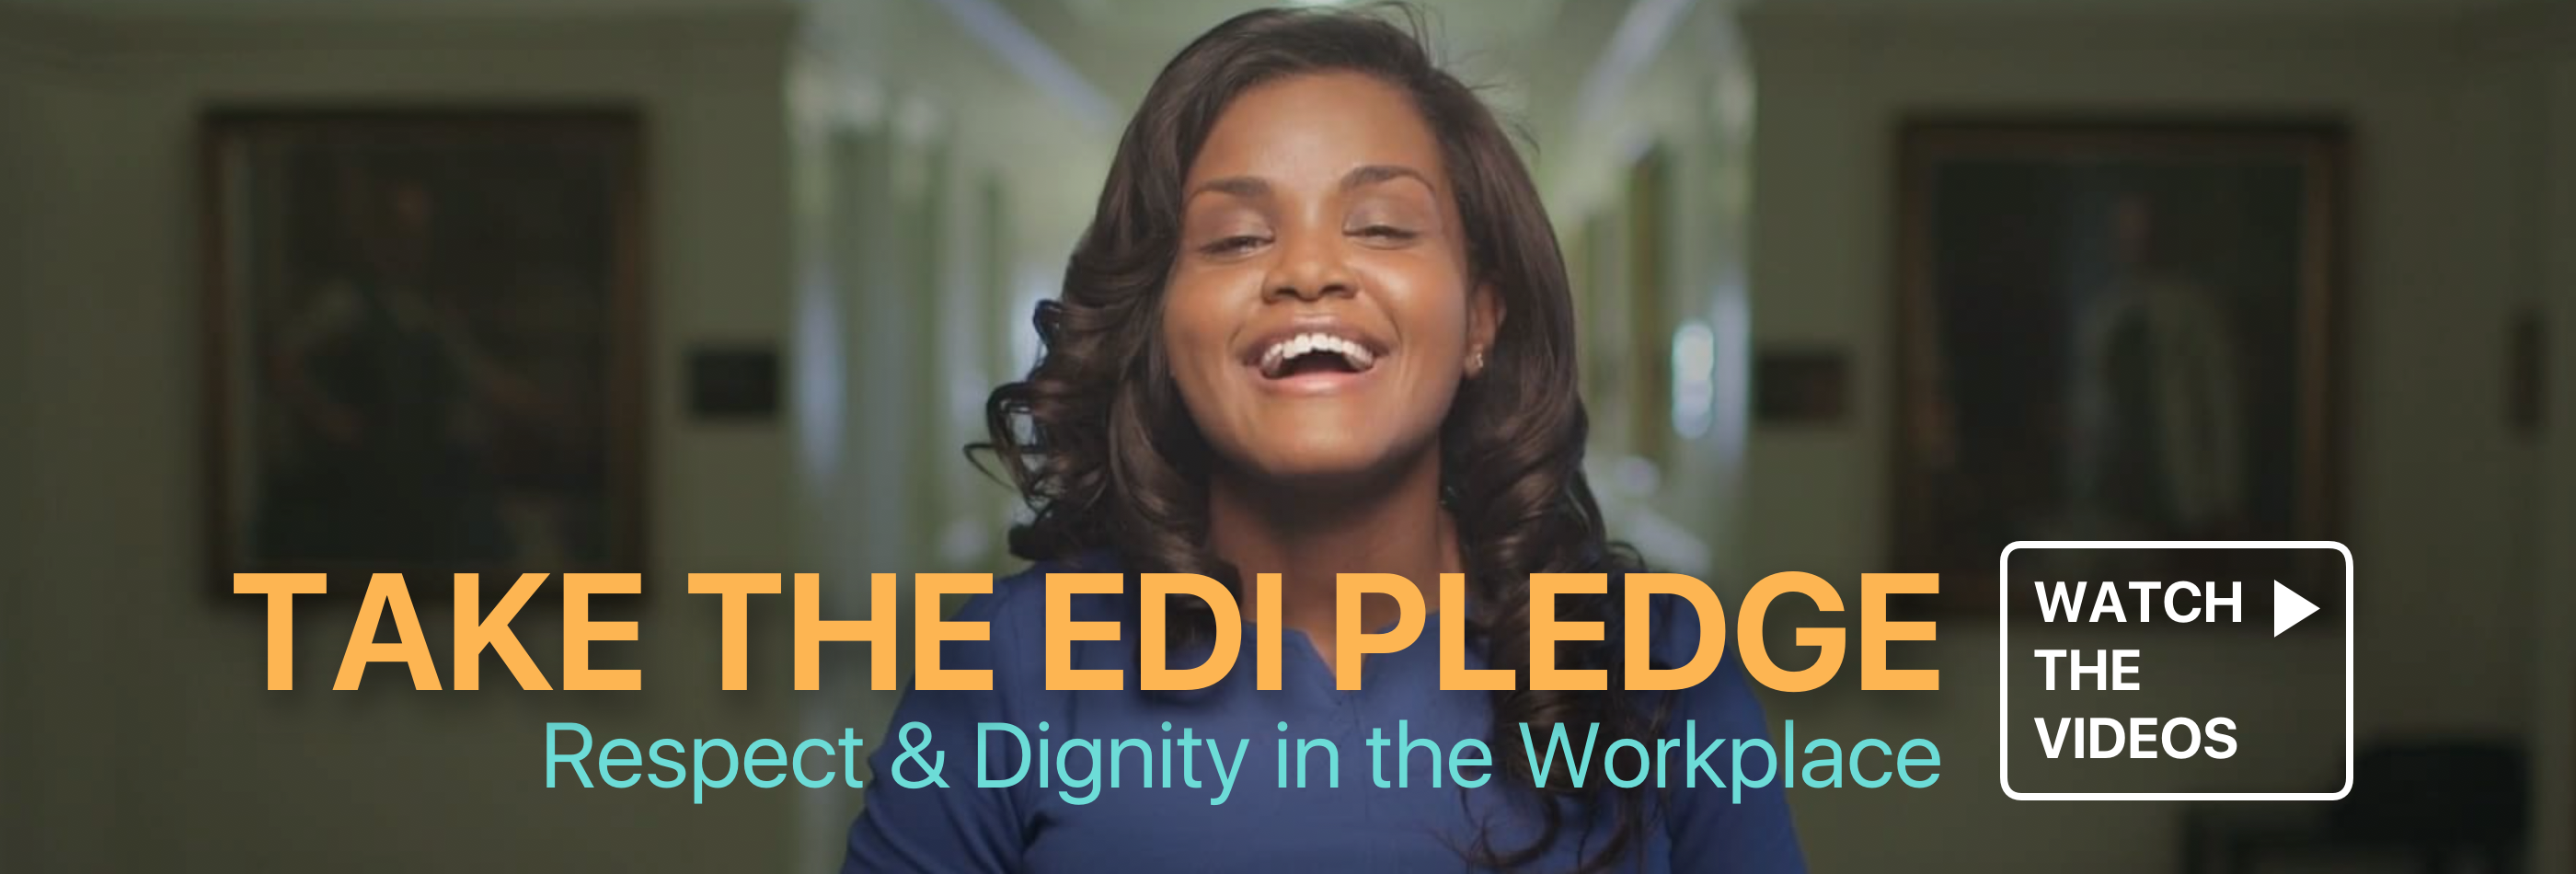 Take the EDI Pledge